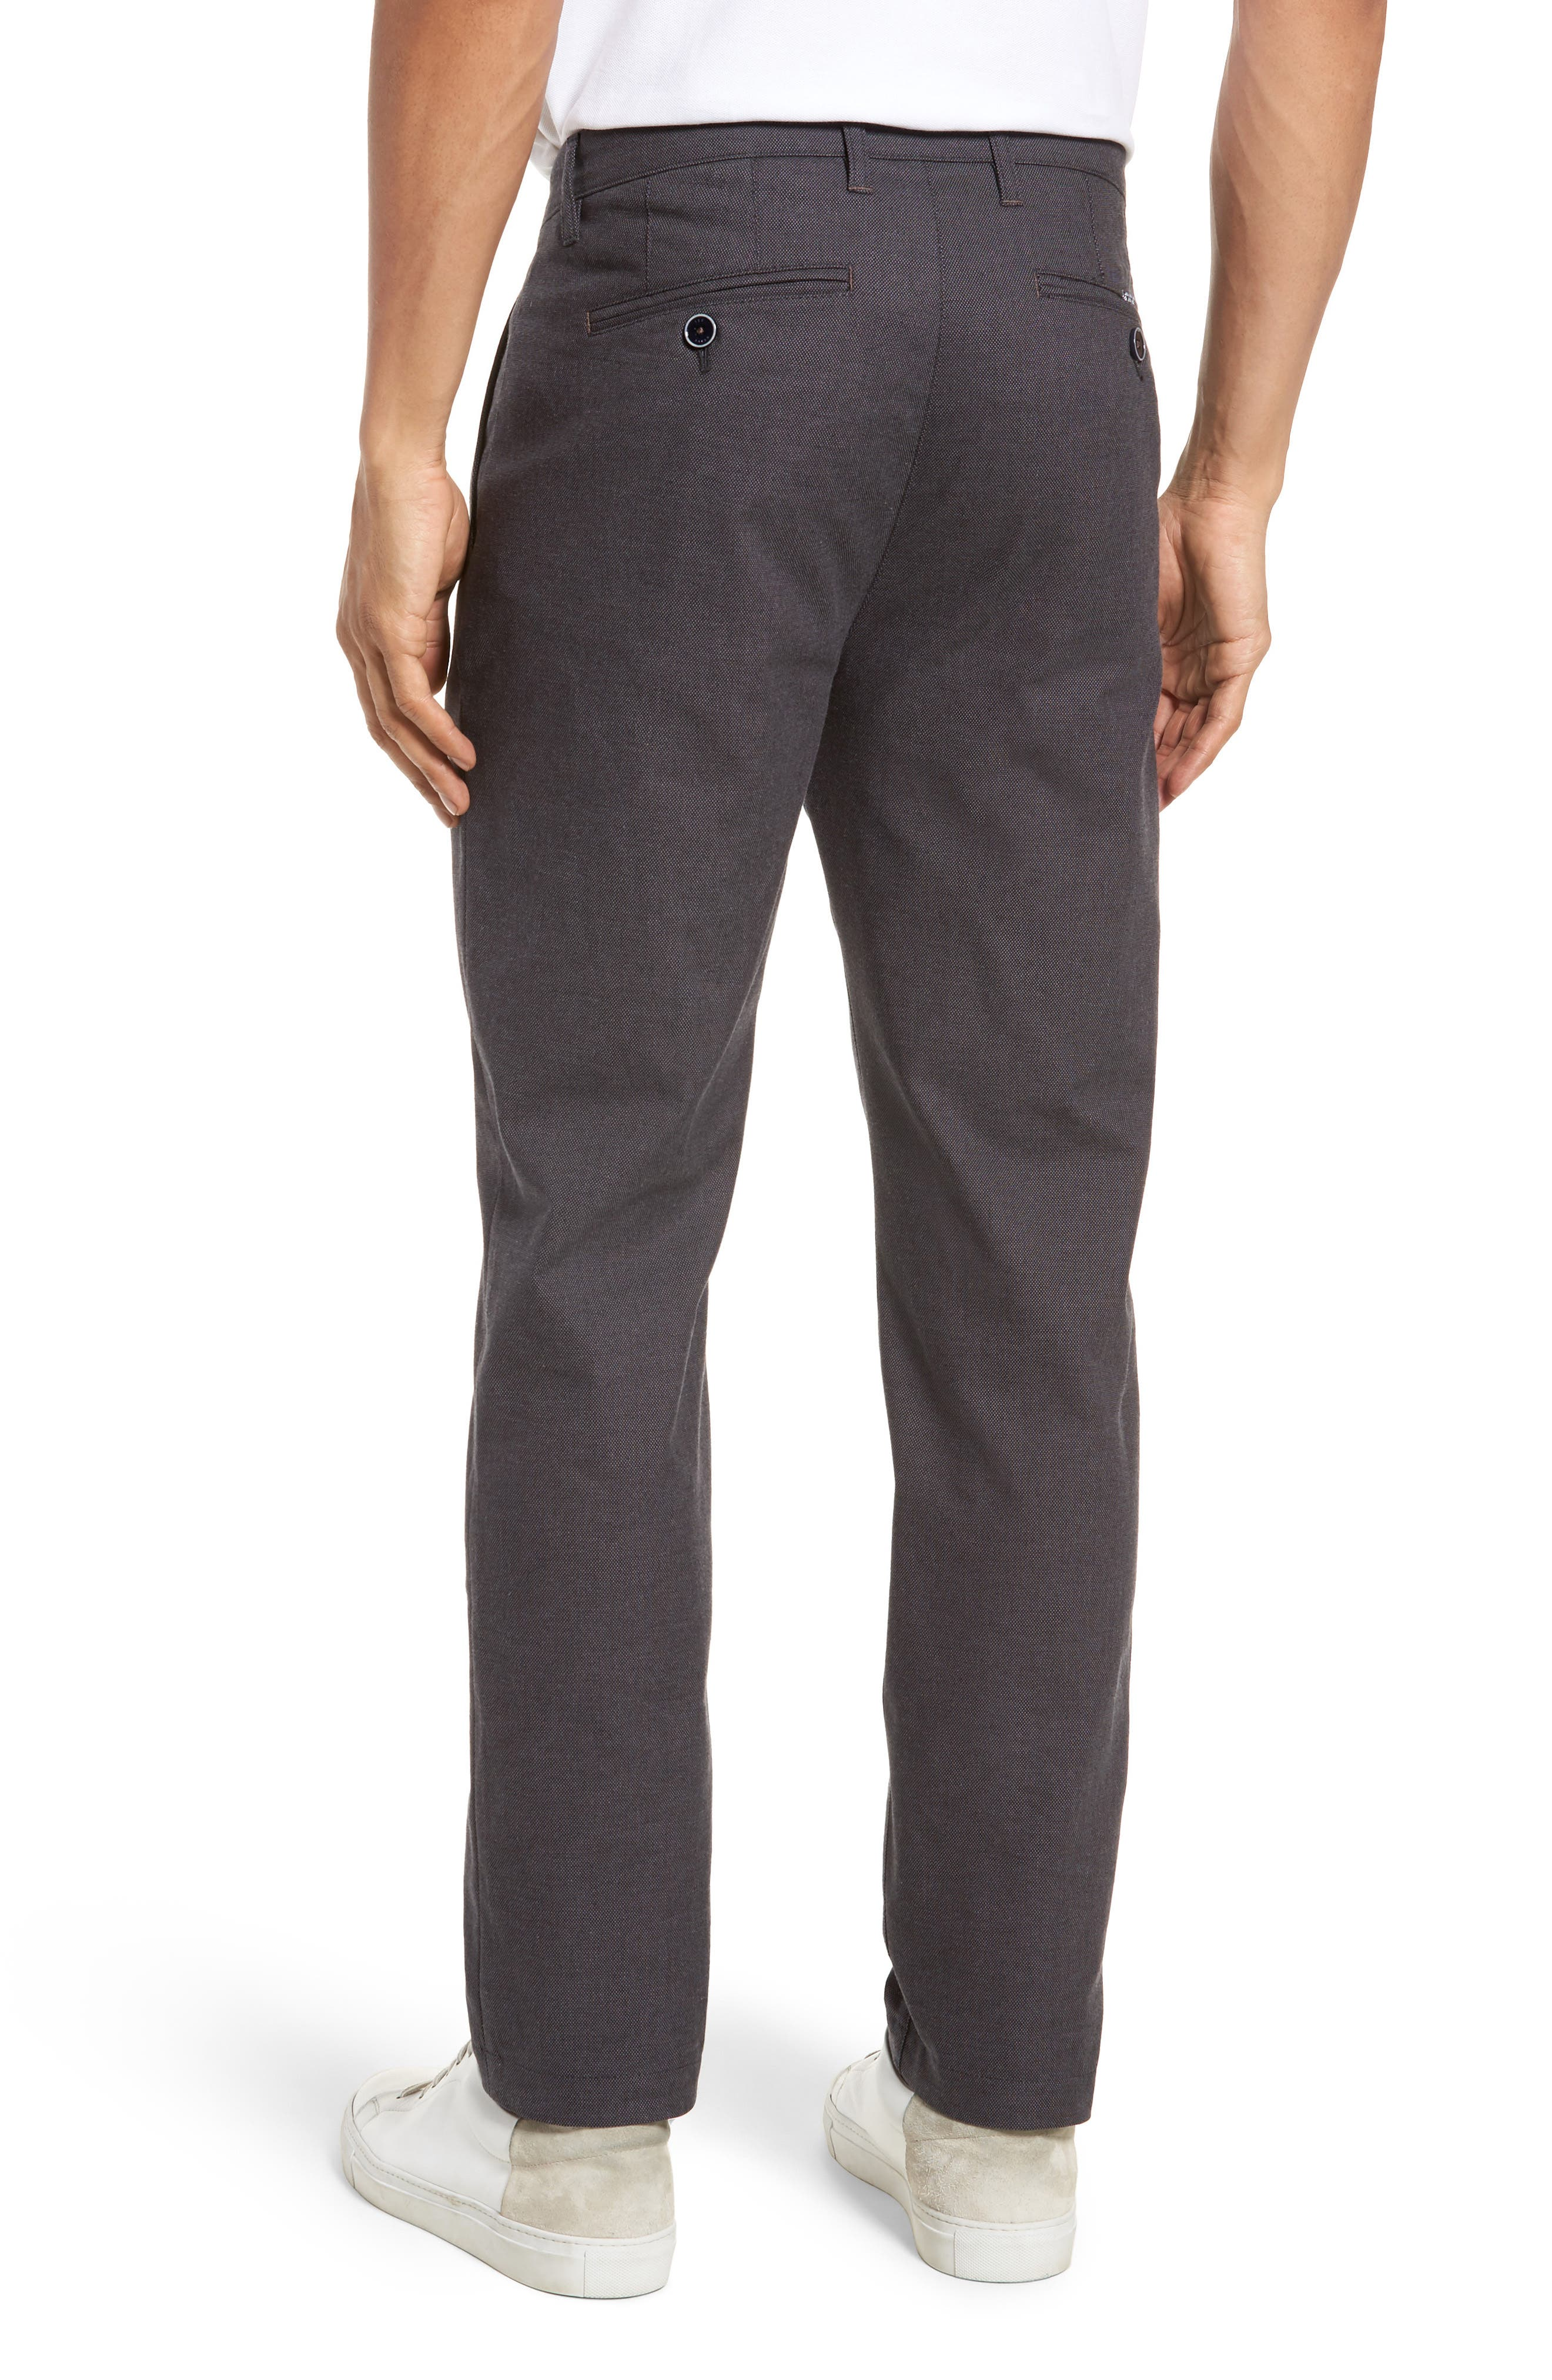 Holldet Flat Front Stretch Solid Cotton Pants,                             Alternate thumbnail 2, color,                             Charcoal